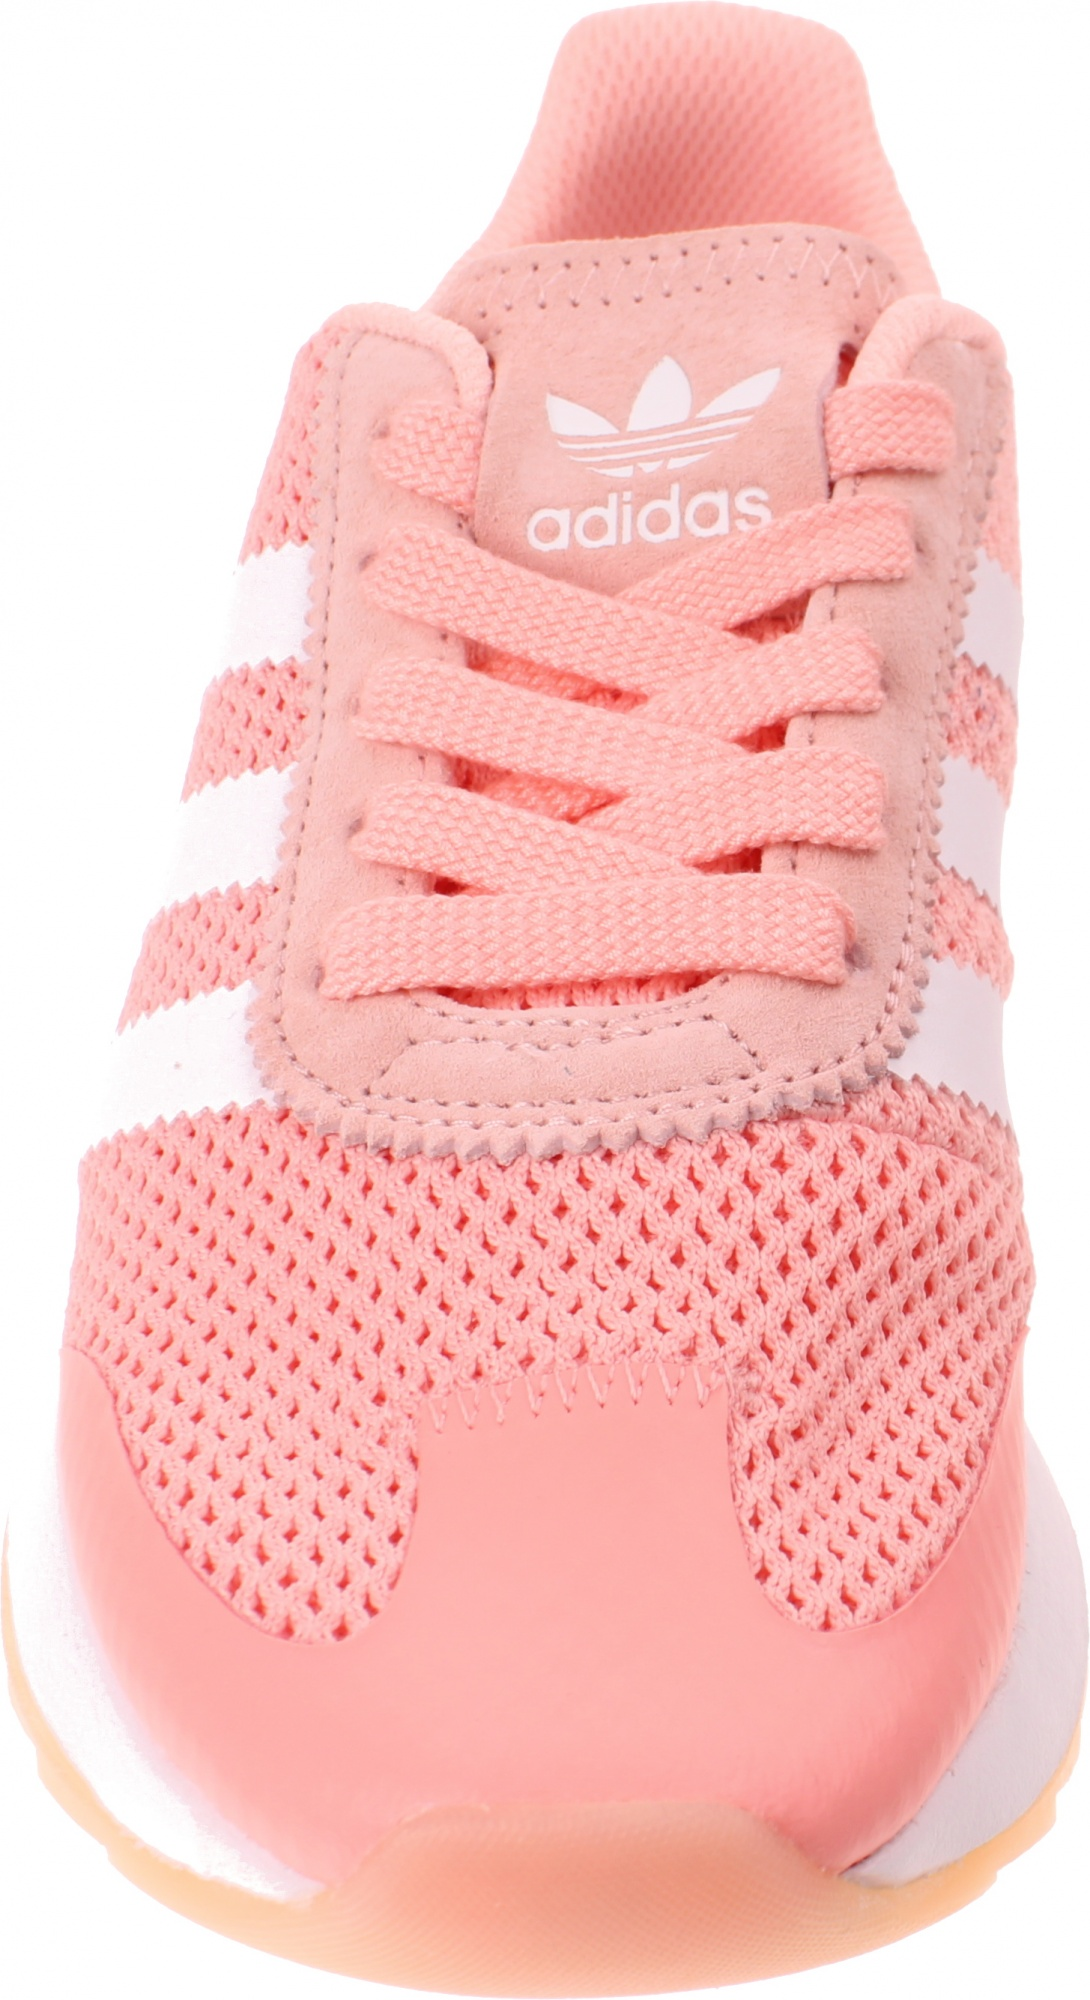 cheap for discount 844b2 2f52d adidas sneakers Flashback ladies pink ...